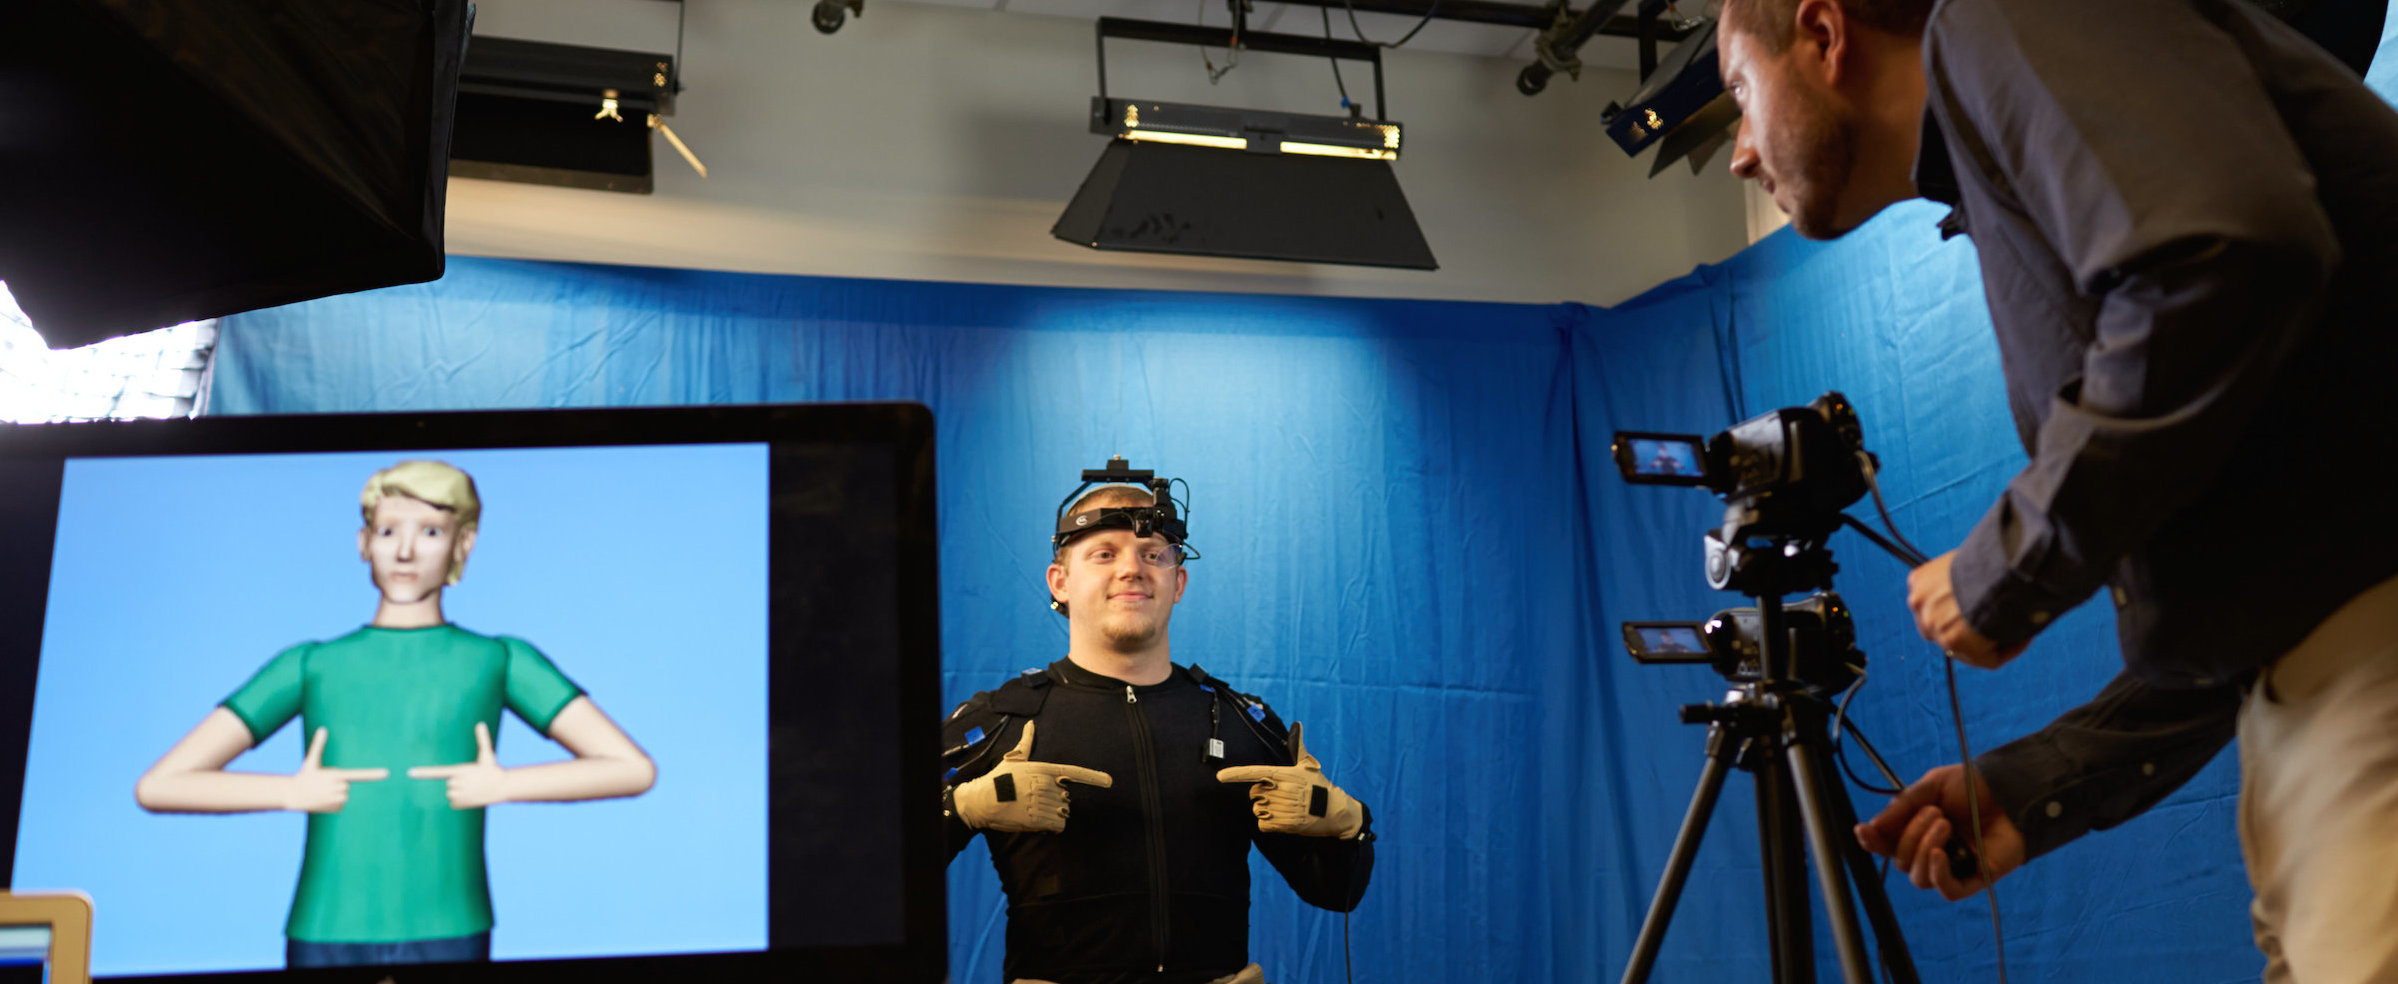 Motion-capture equipment recording in the laboratory.